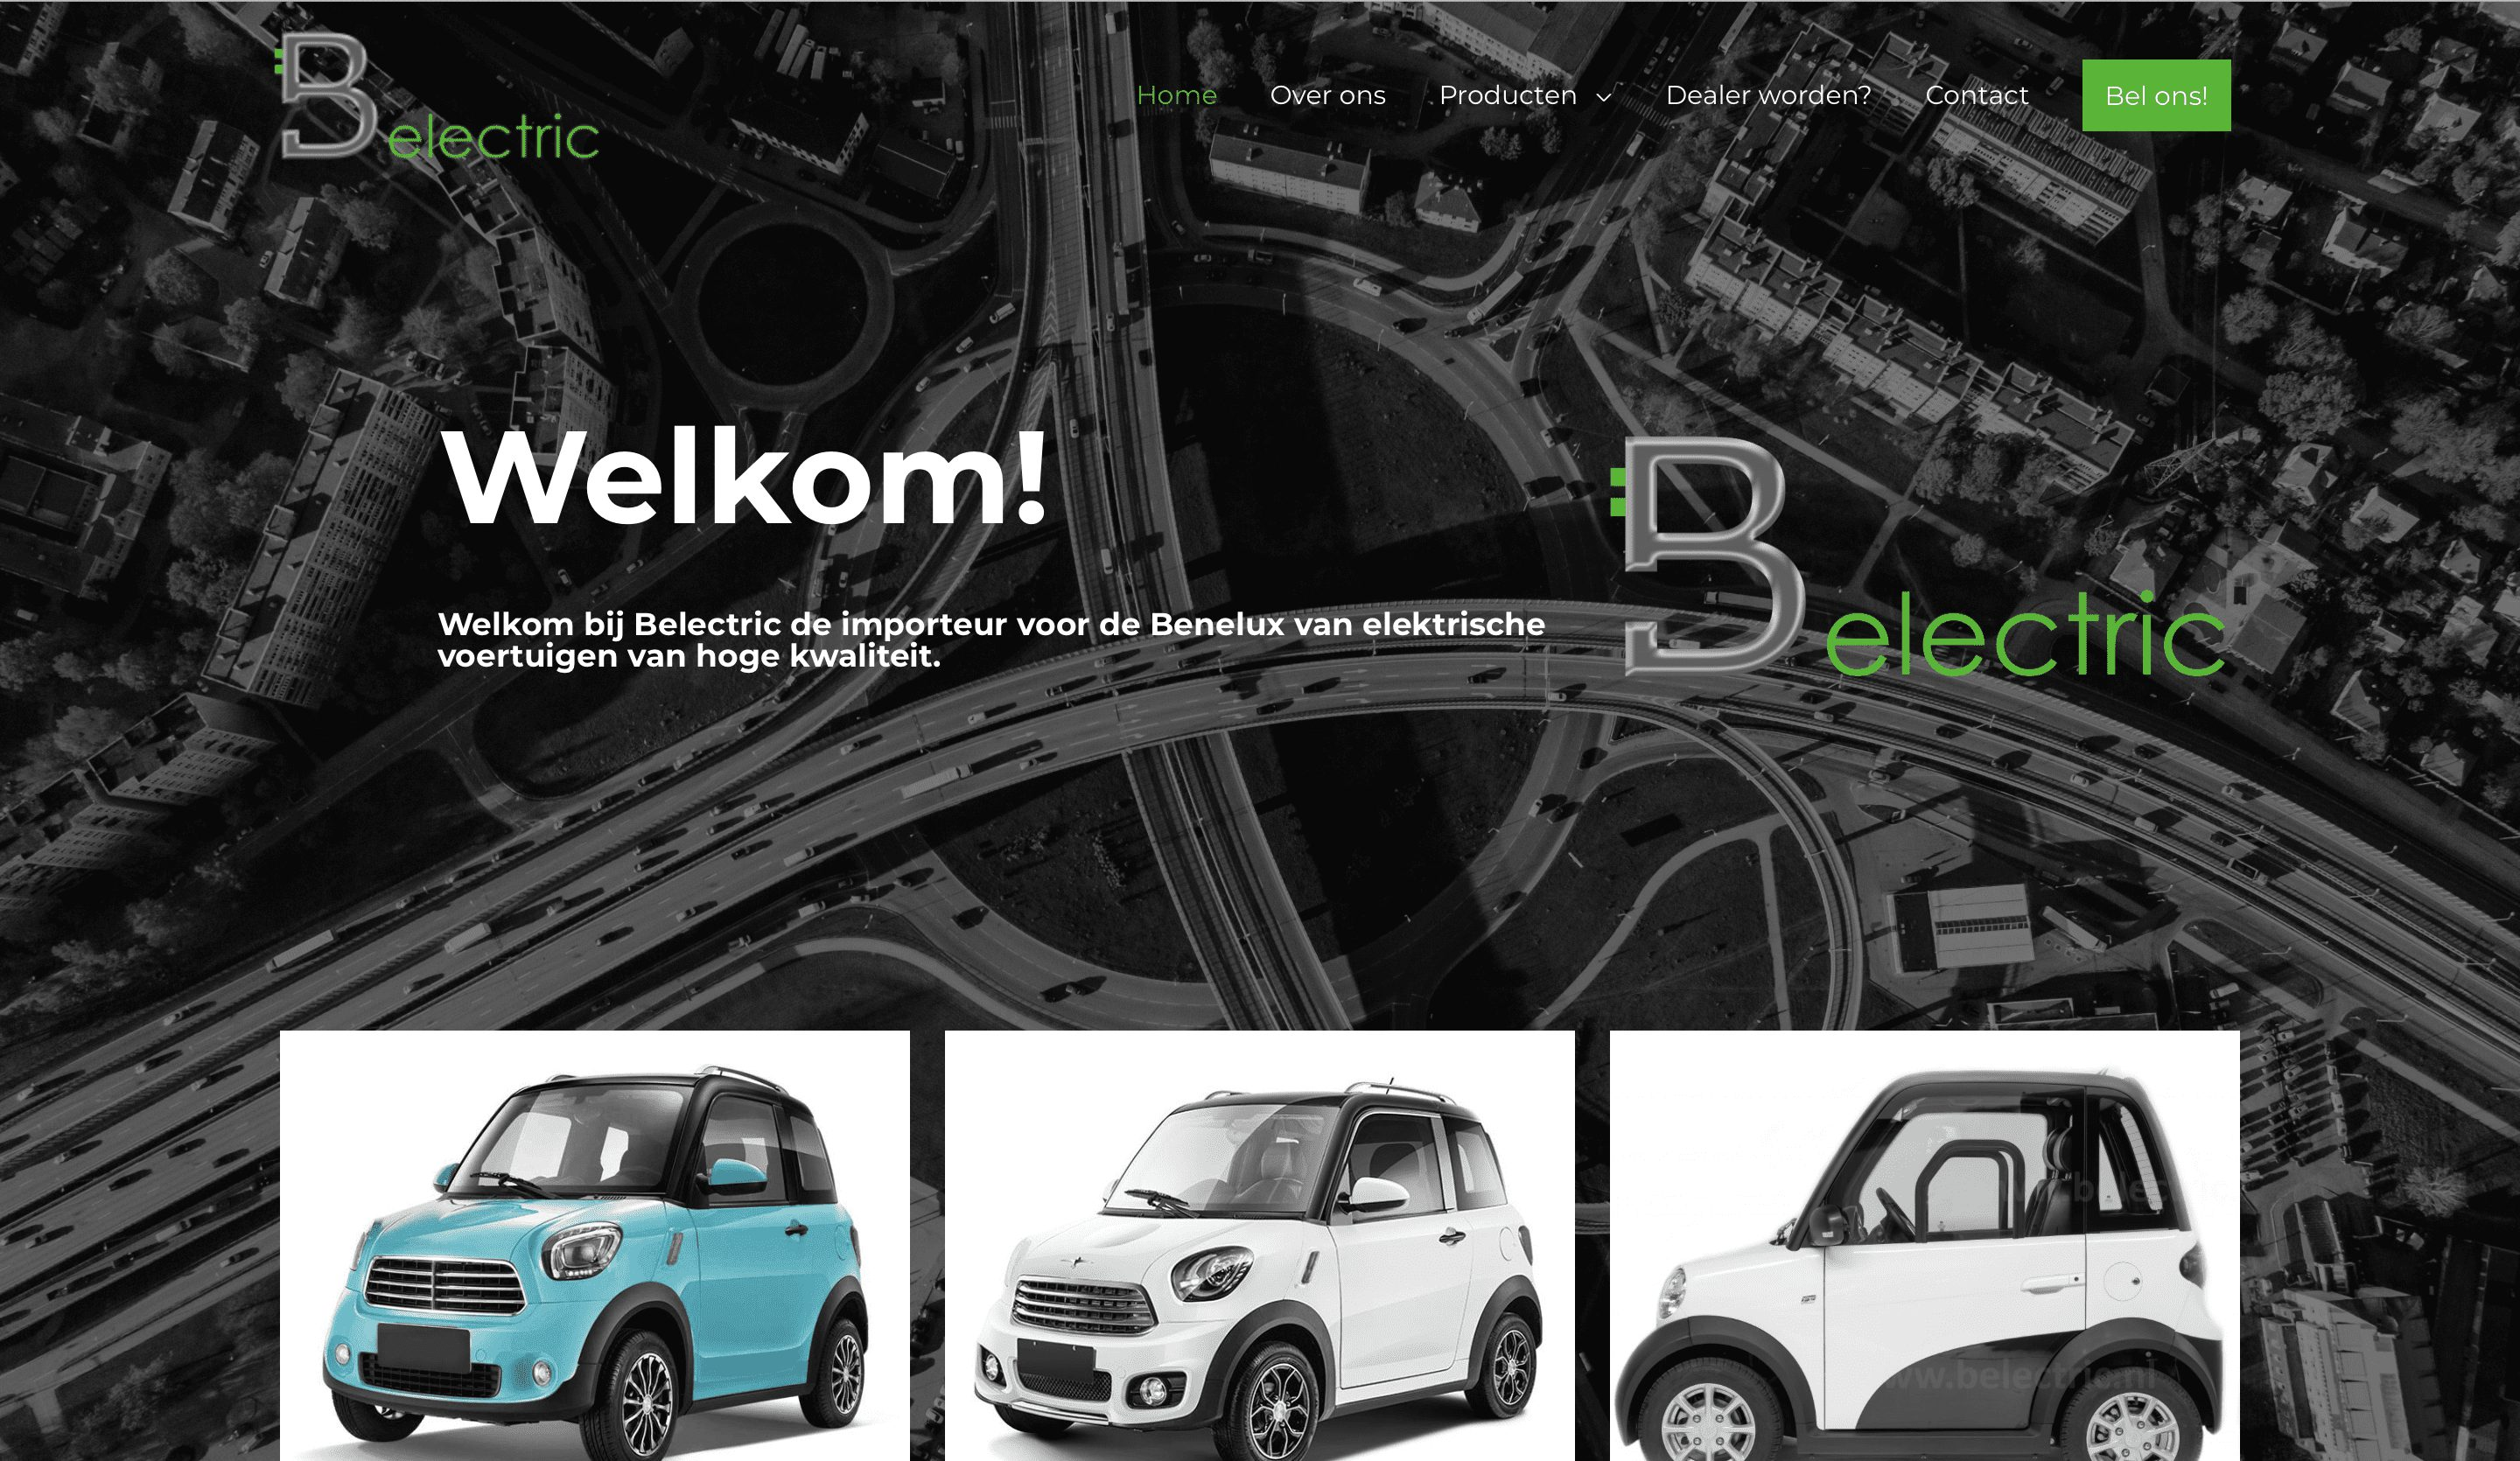 Belectric Automotive in Eindhoven